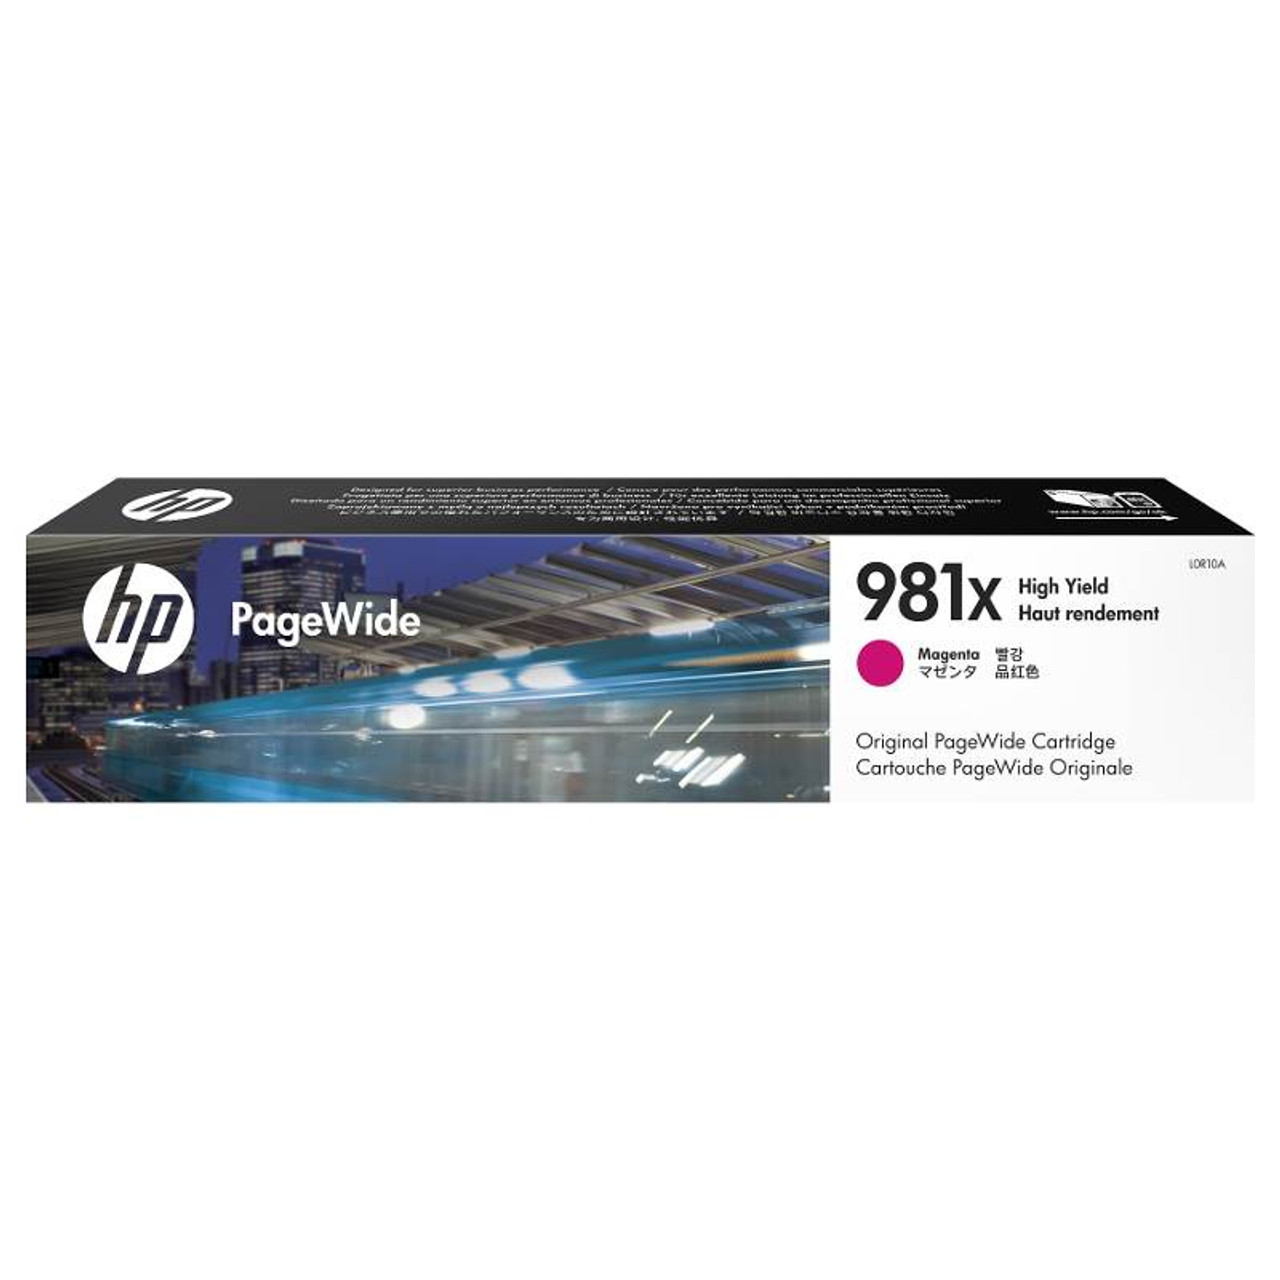 Image for HP 981X High Yield Magenta Original PageWide Cartridge (L0R10A) CX Computer Superstore